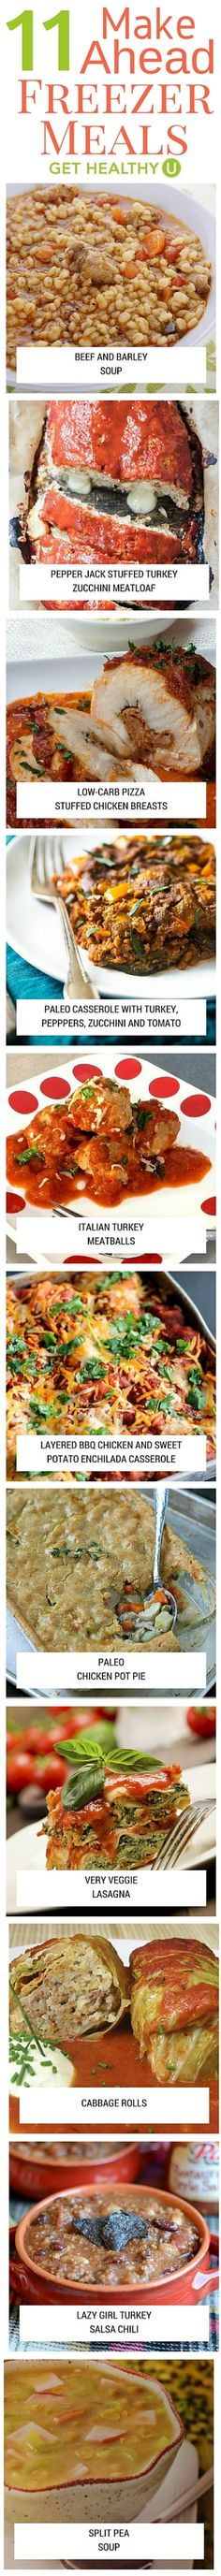 11 Make Ahead Freezer Meals - Get Healthy U - Play more & cook less! Make meal planning a snap with these 11 healthy make-ahead freezer recipes! These recipes are easy and Get Healthy U-tested so we promise you will love them! Healthy Meals For One, Healthy Eating Recipes, Healthy Cooking, Get Healthy, Healthy Foods, Healthy Habits, Make Ahead Freezer Meals, Freezer Recipes, Easy Meals